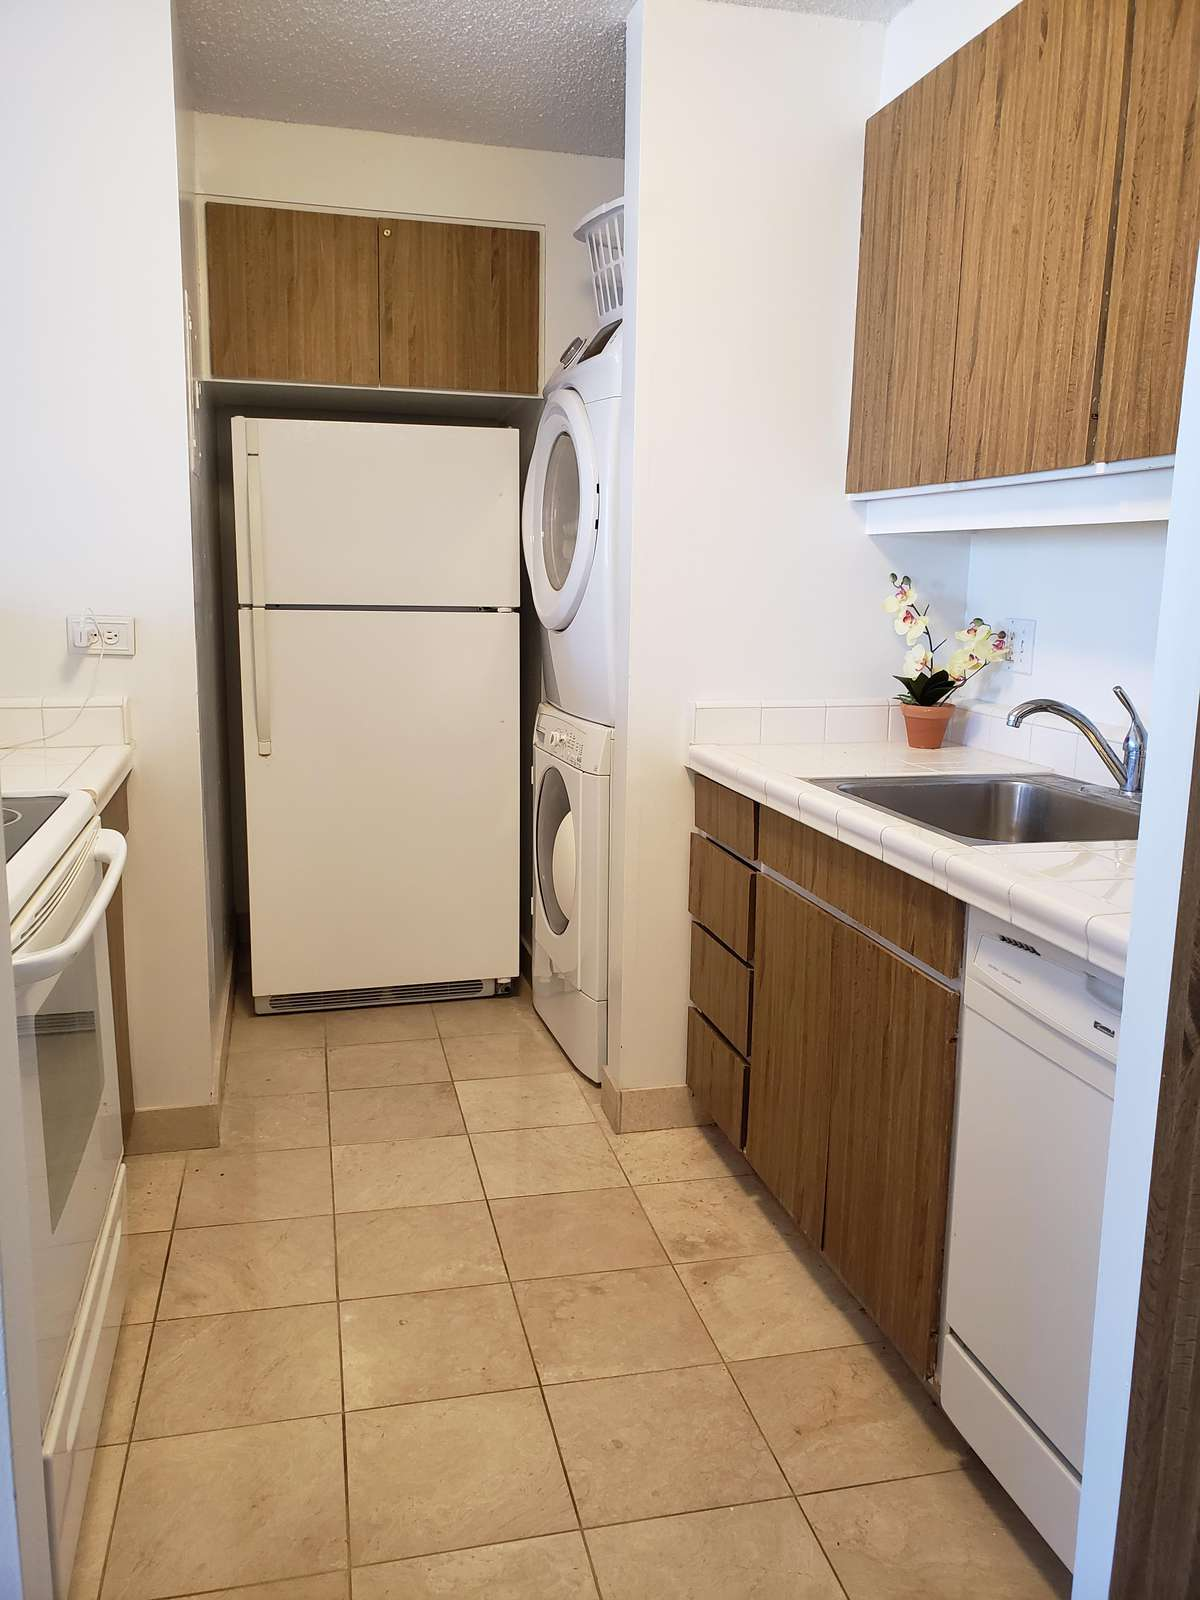 Complete Kitchen with Stove, Oven, Dishwasher and All the Basics